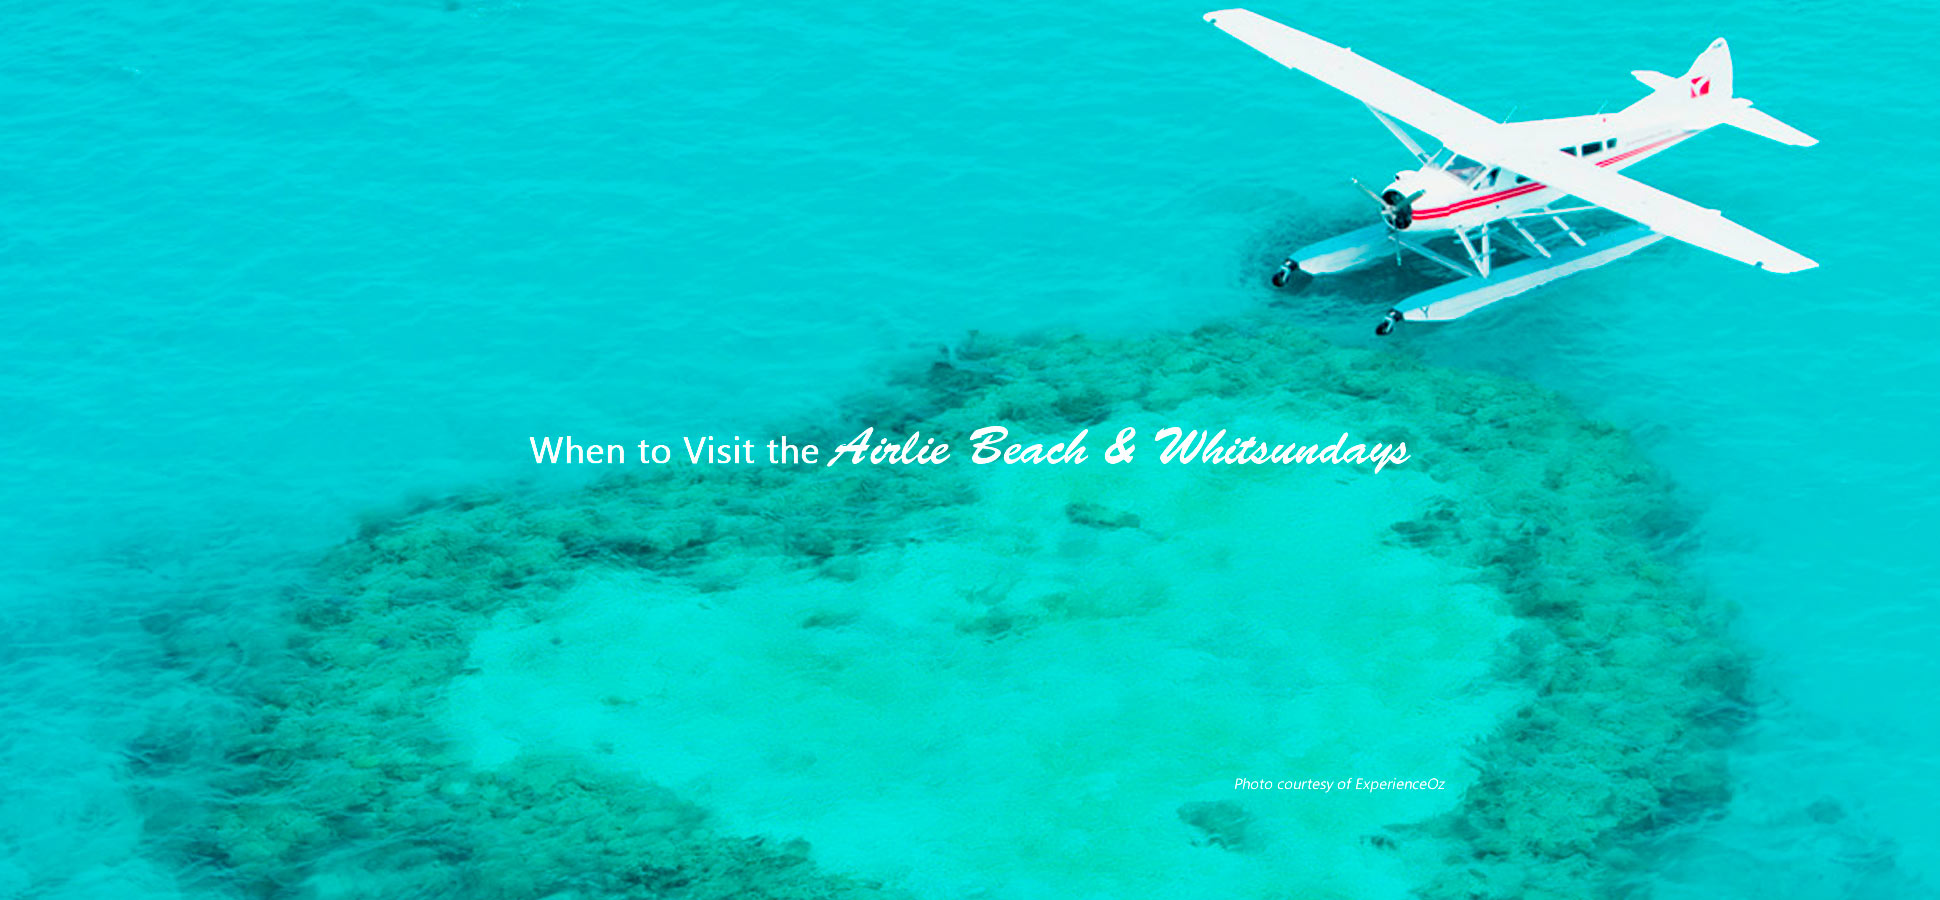 when to visit airlie beach whitsundays